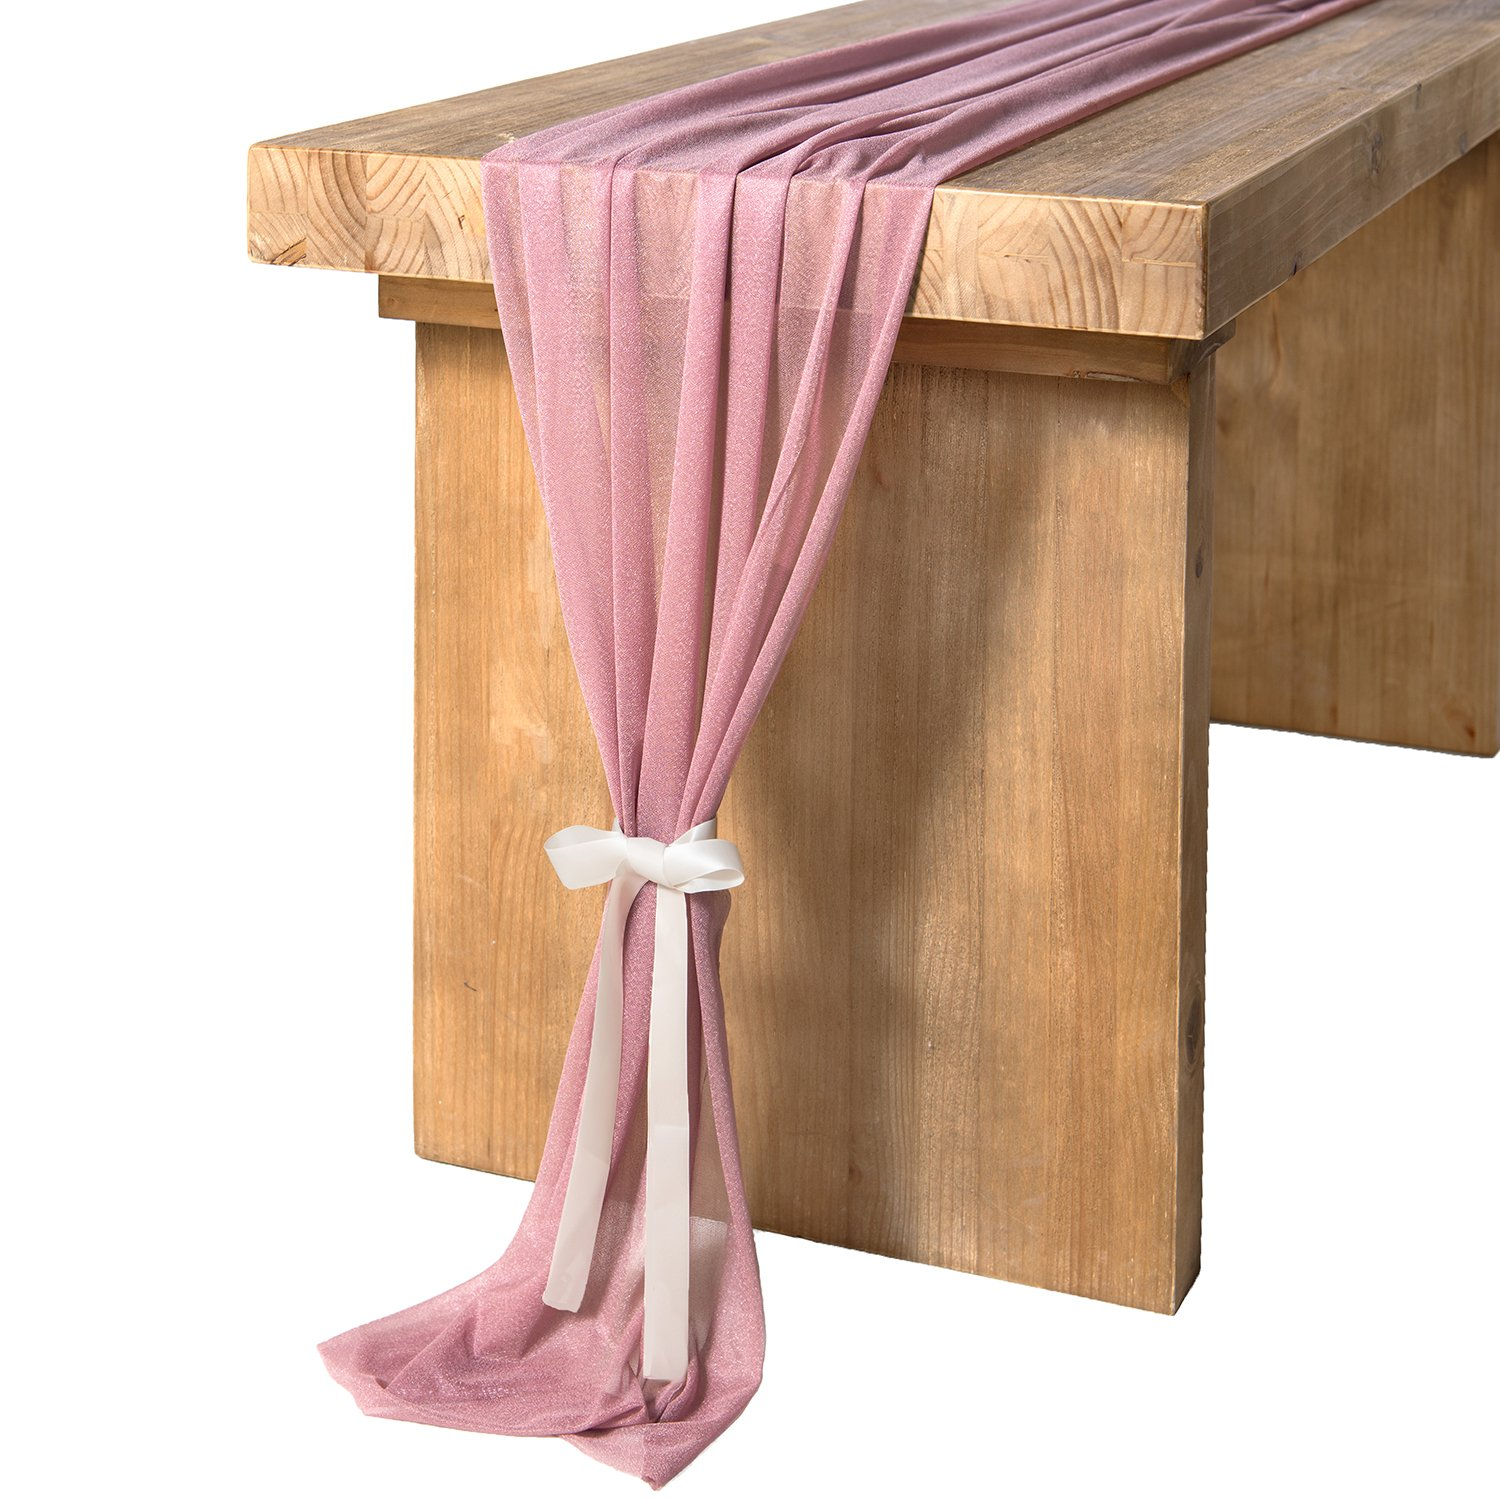 Ling's moment 32 x 120 inches Mauve/Dusty Rose Sheer Table Runner/Overlay Rustic Boho Wedding Party Bridal Shower Baby Shower Decorations by Ling's moment (Image #2)